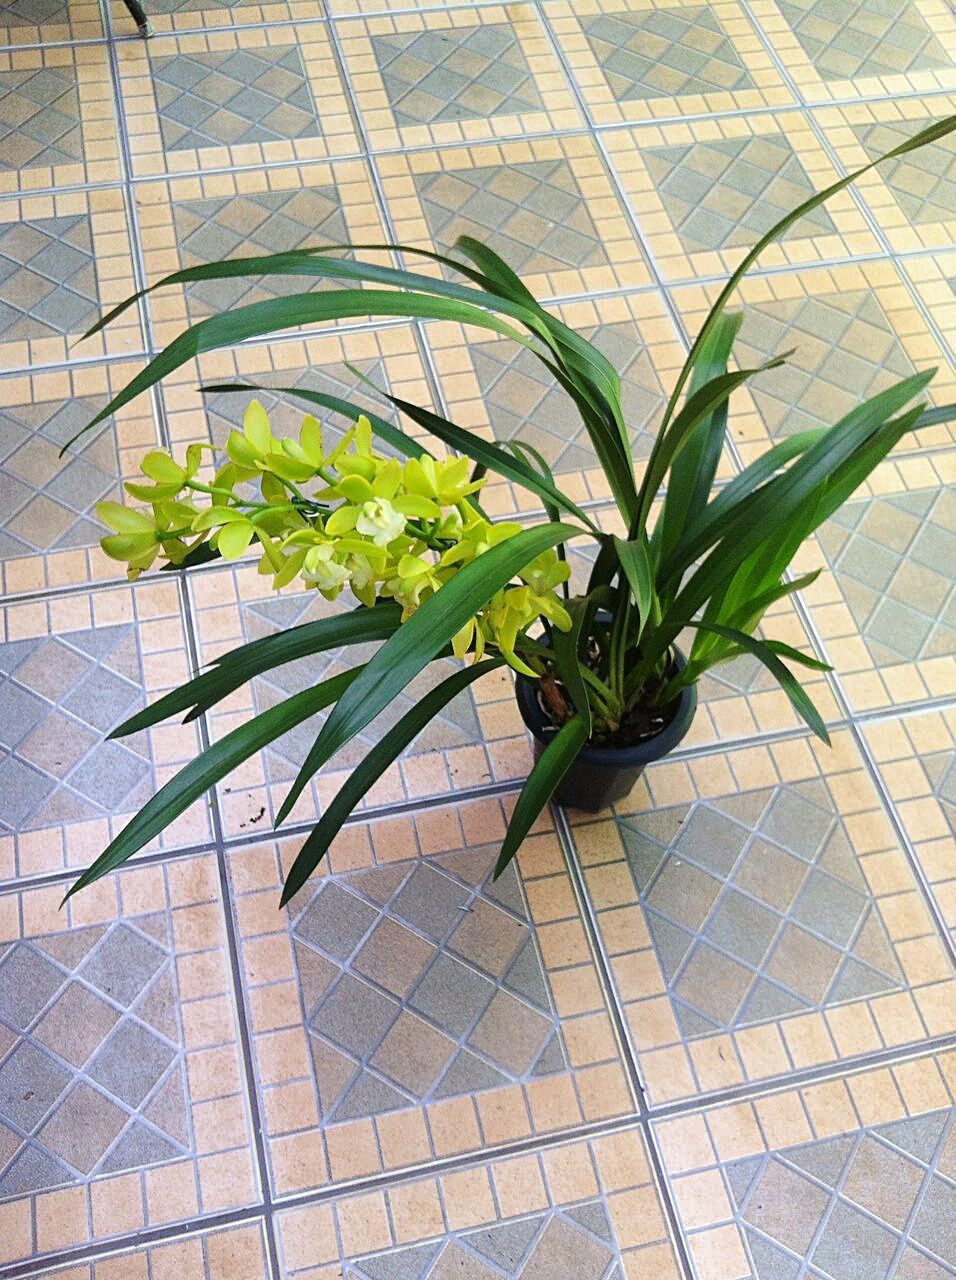 plant, green color, tiled floor, growth, no people, flower, leaf, day, nature, outdoors, beauty in nature, freshness, architecture, greenhouse, close-up